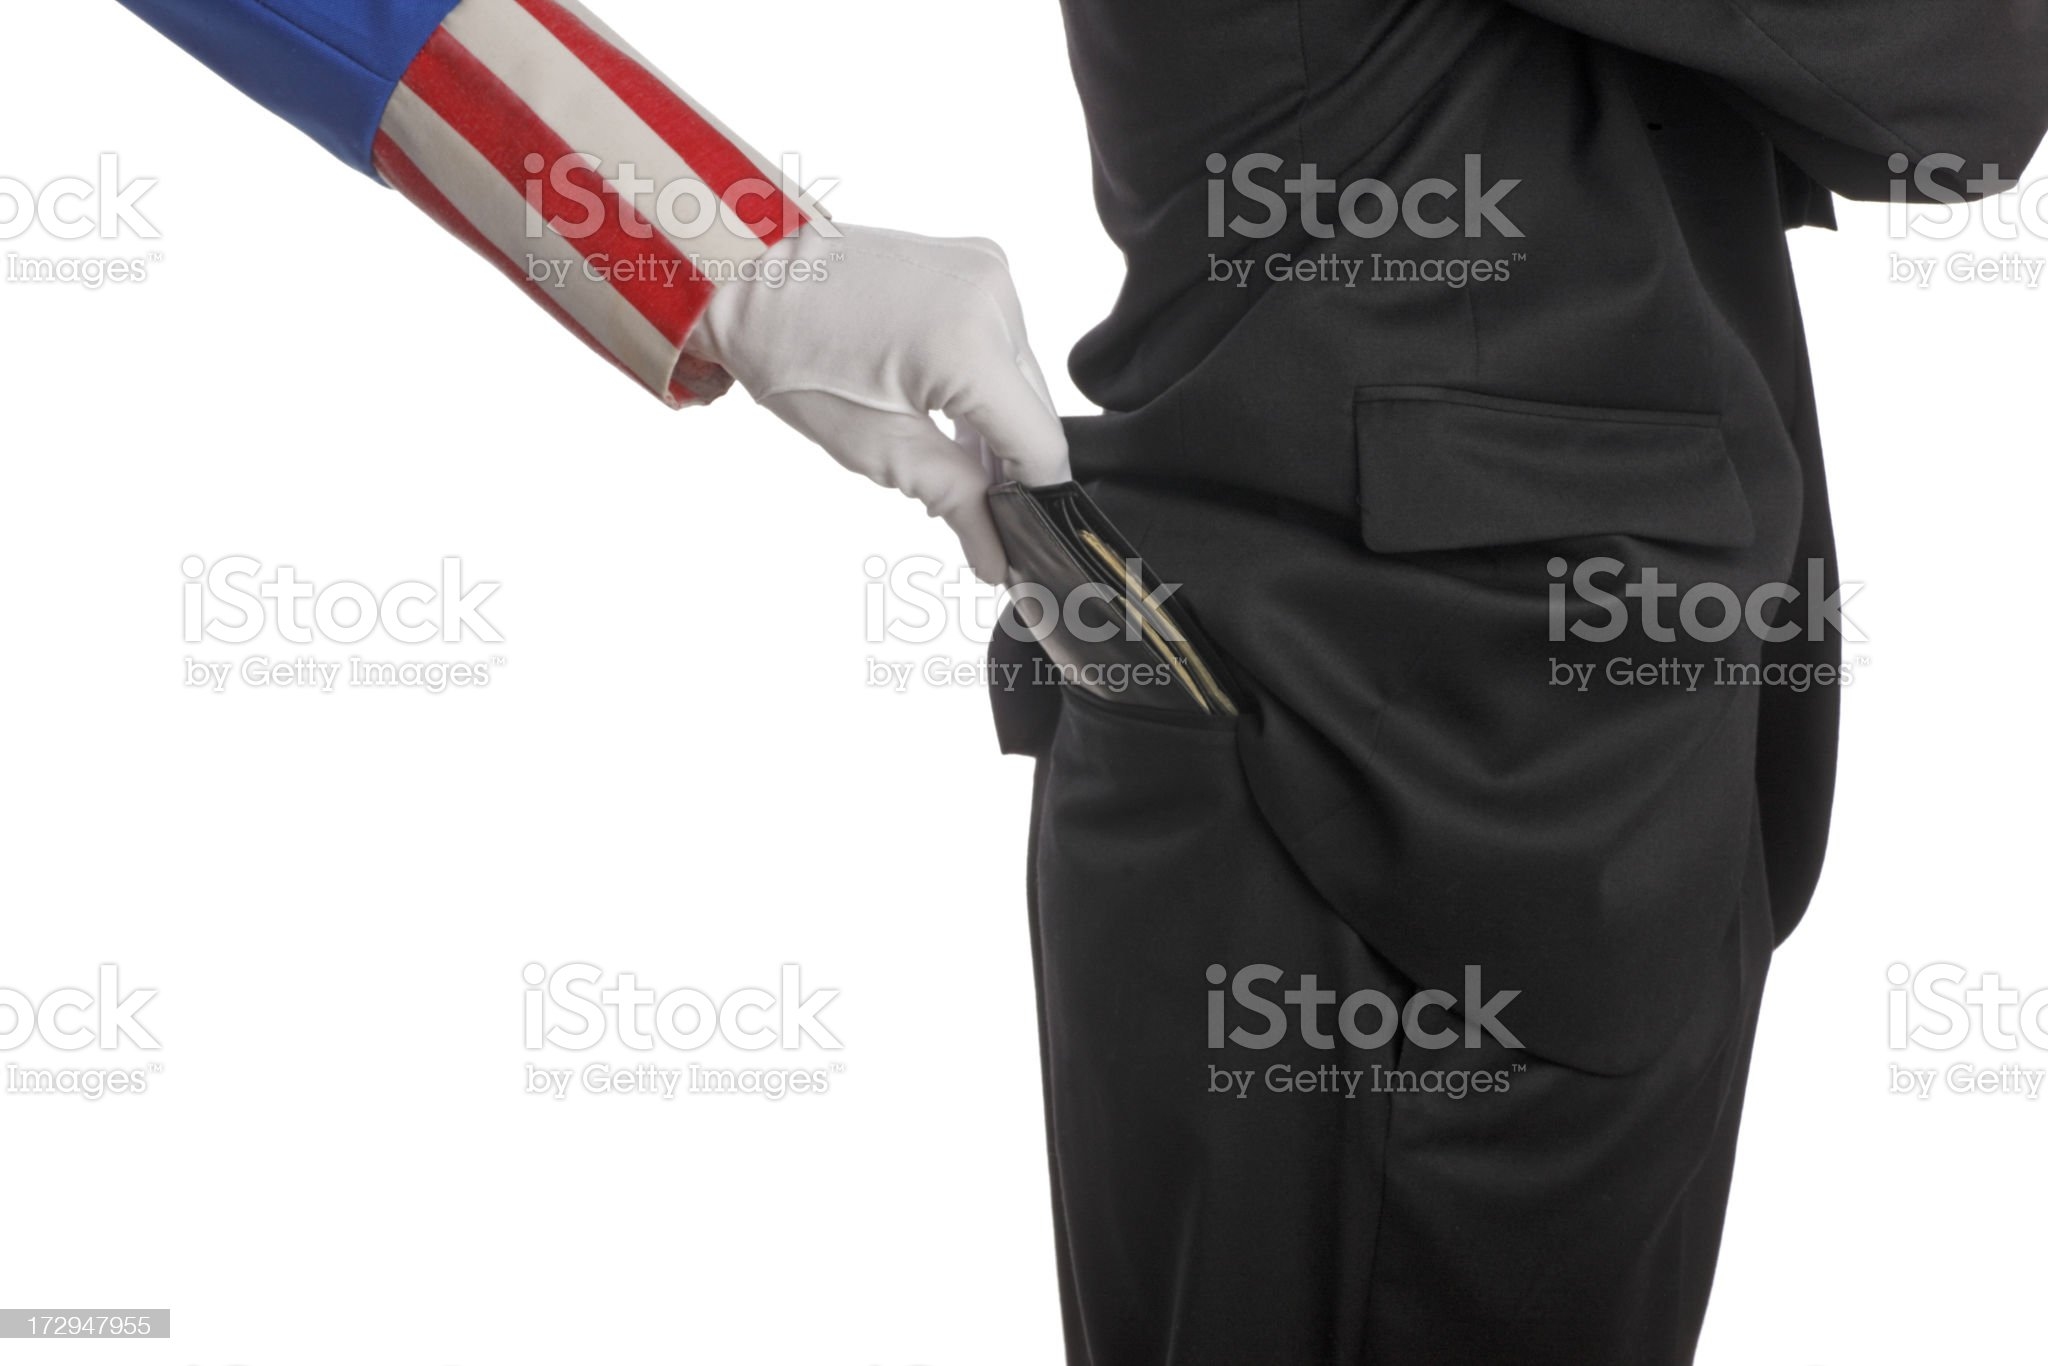 Uncle Sam pick pocketing a man in a business suit. royalty-free stock photo